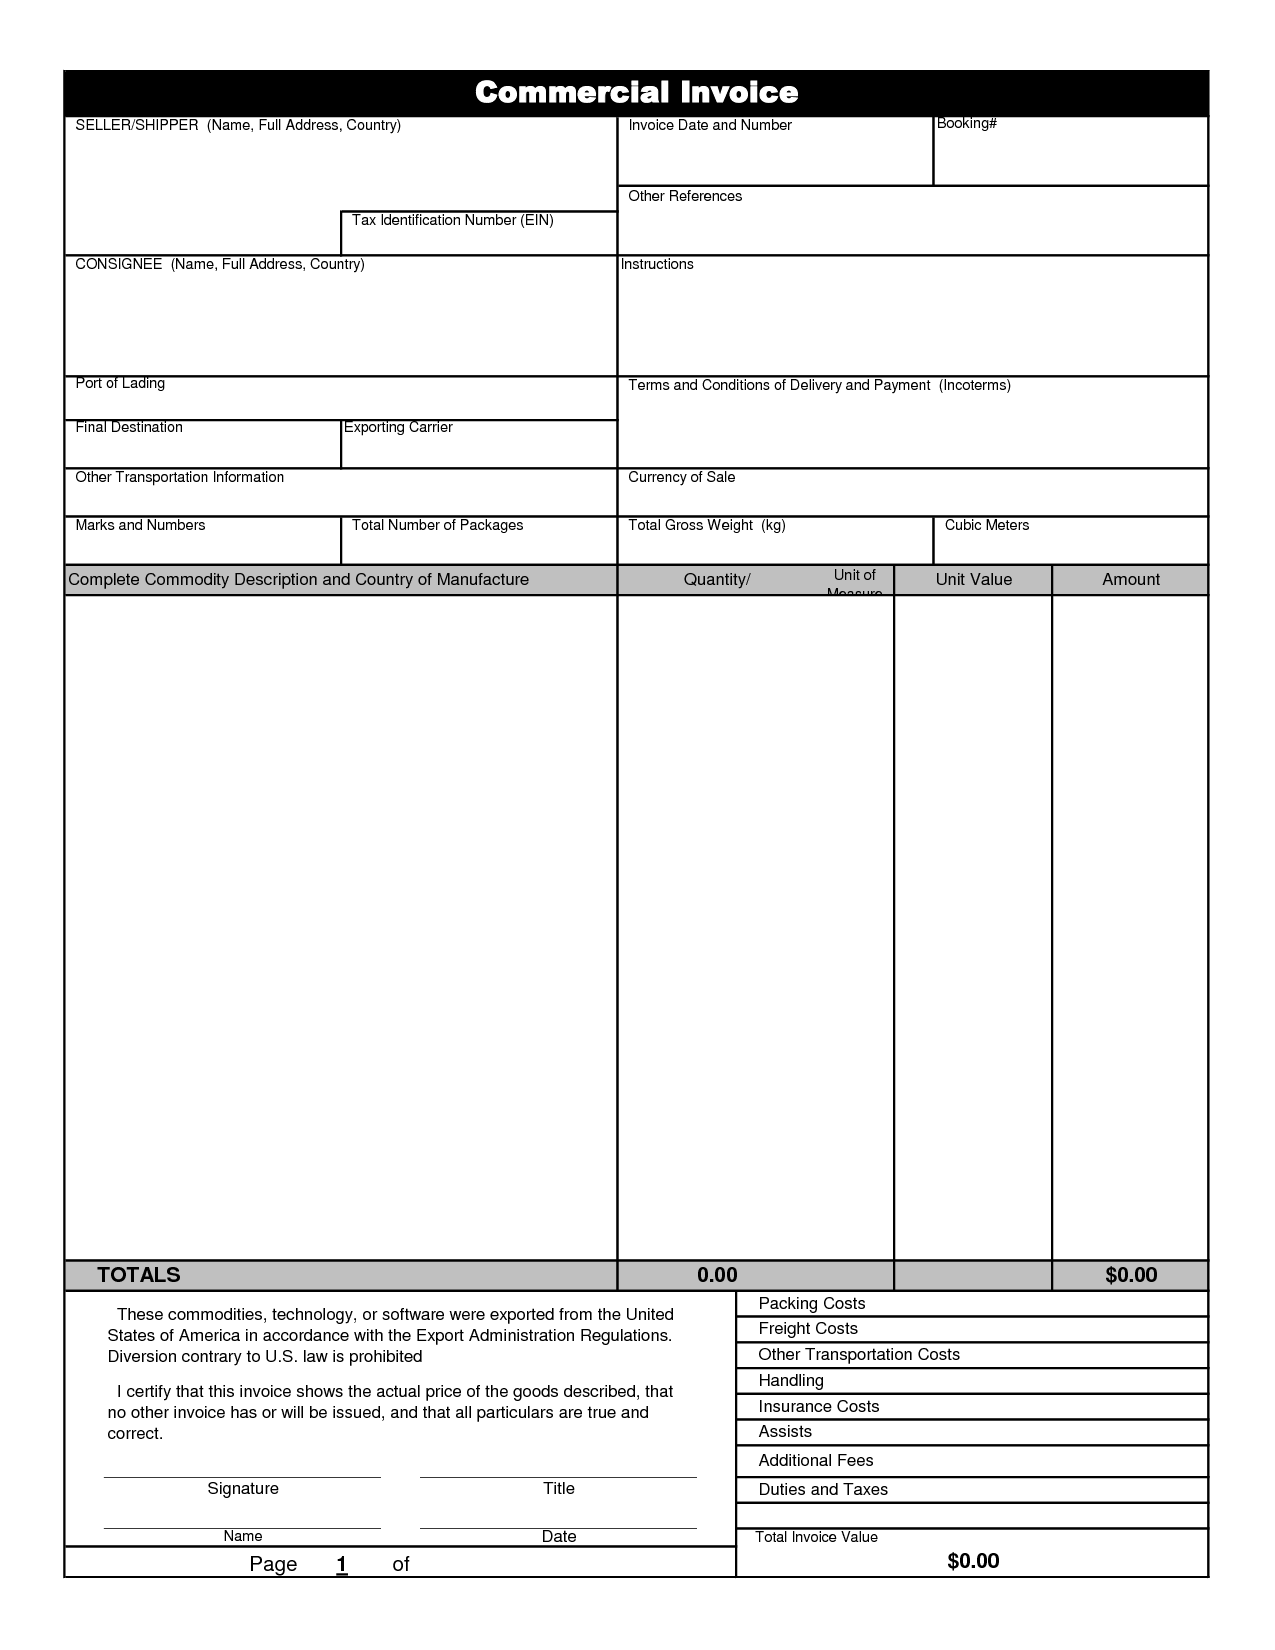 International Commercial Invoice Template Invoice Example